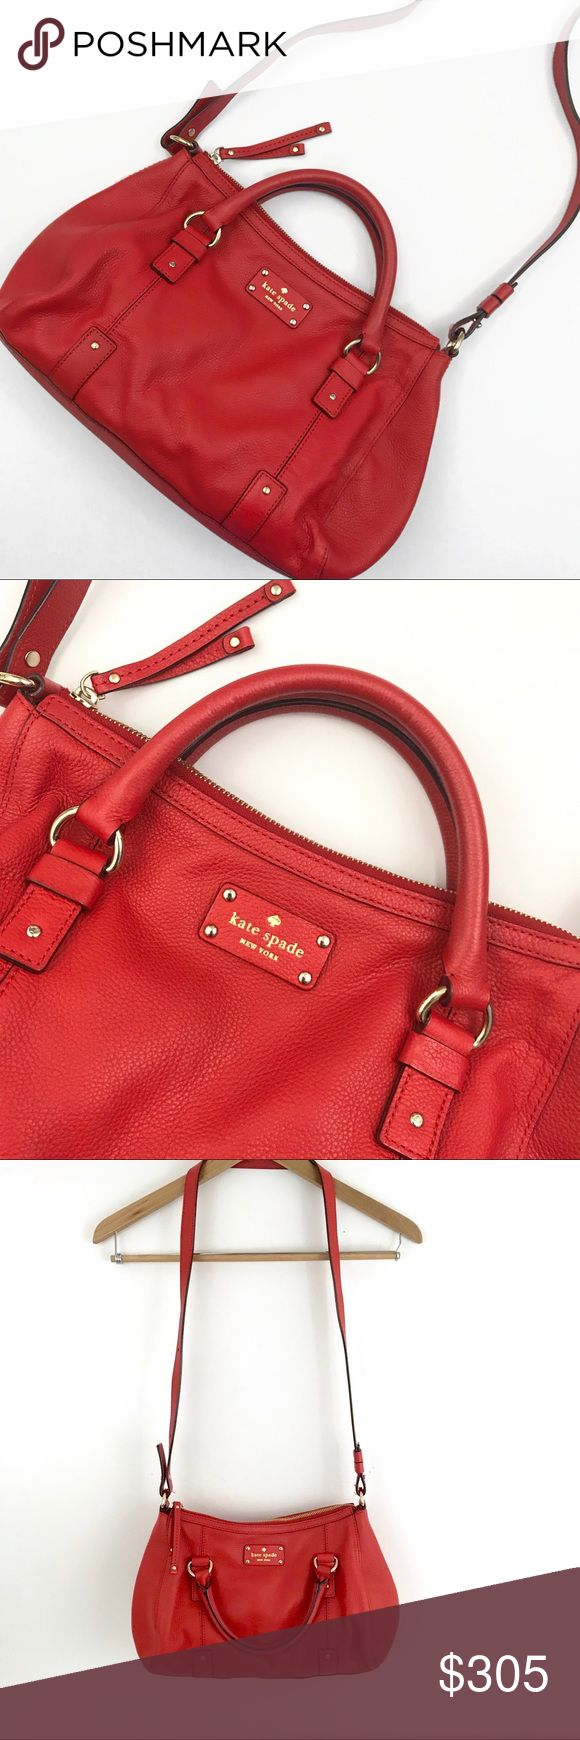 """Red Leather Kate Spade Satchel Authentic Kate Spade handbag. Pebbled red leather with black and white polka dot lining. Top handles with longer strap that is adjustable. Zips closed at top. Interior has one zip pocket and two slip pockets. Approx. 16"""" at widest point x 9""""H x 3""""D. Only wear is some very slight fading to the leather on the bottom of the bag (barely noticeable - I was only able to see it once I had my studio lights on for photos). Otherwise in perfect condition inside and out…"""